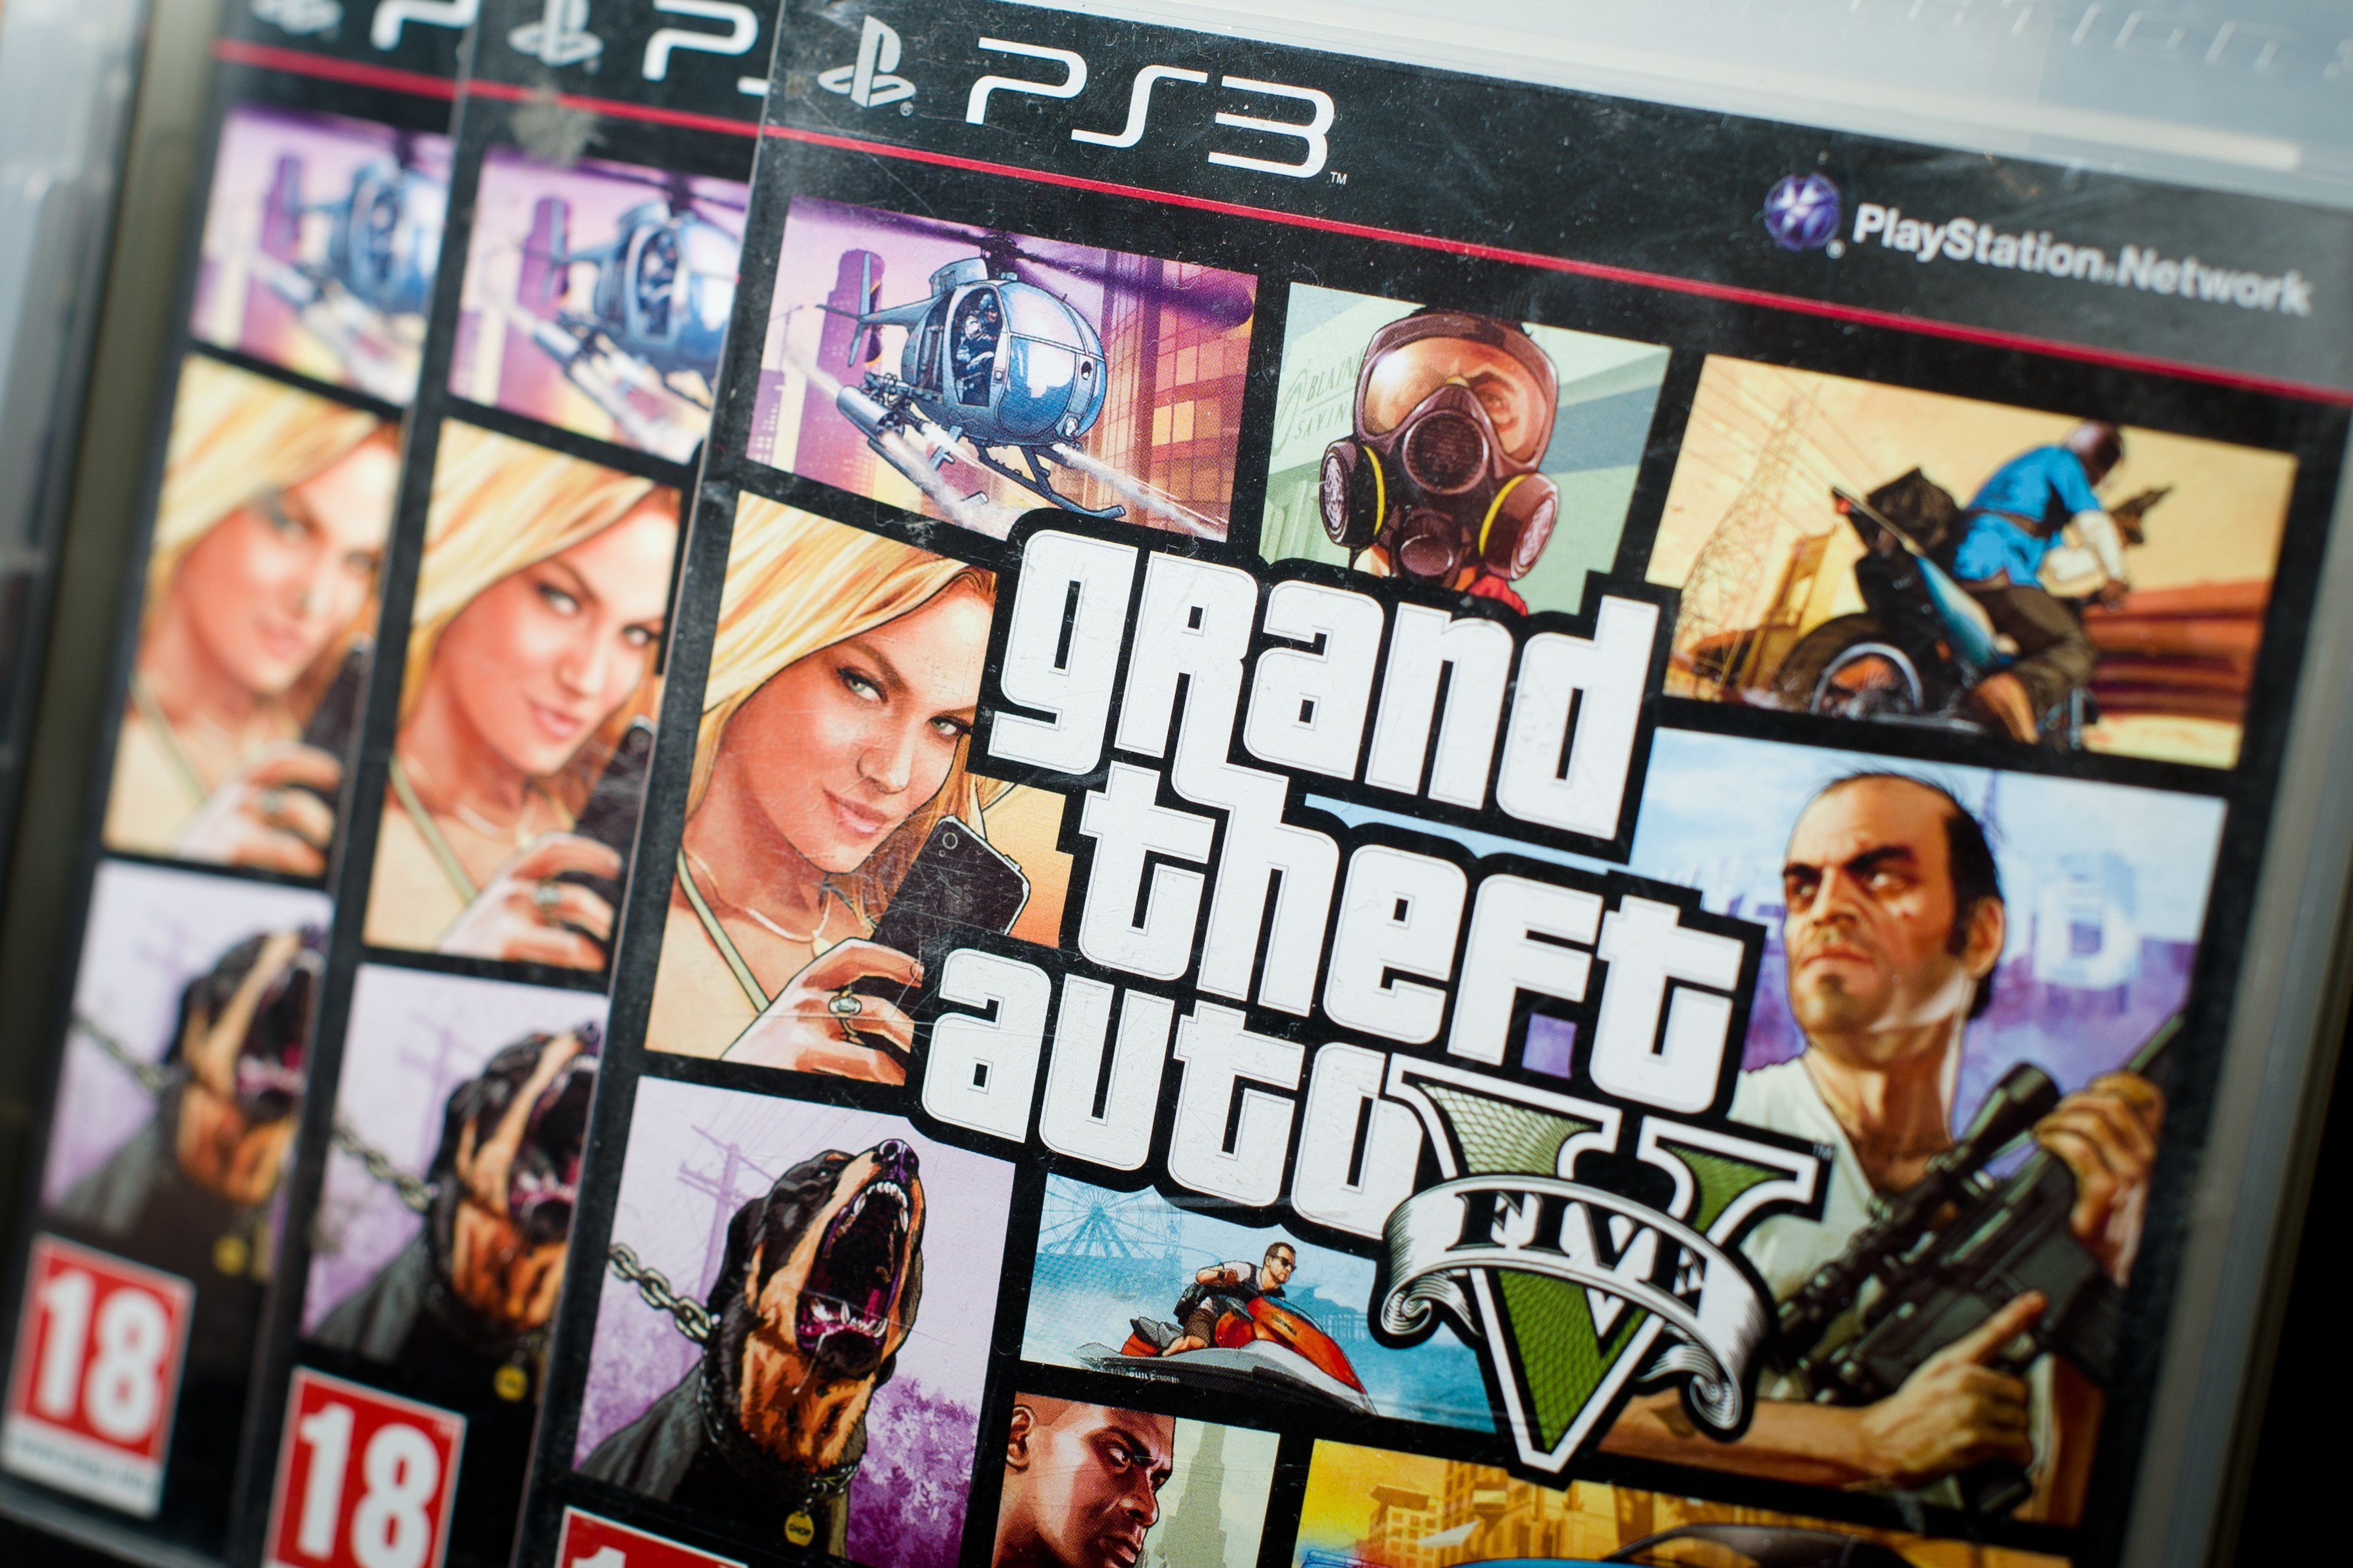 'Grand Theft Auto 5' More Profitable Than Any Film Or Book